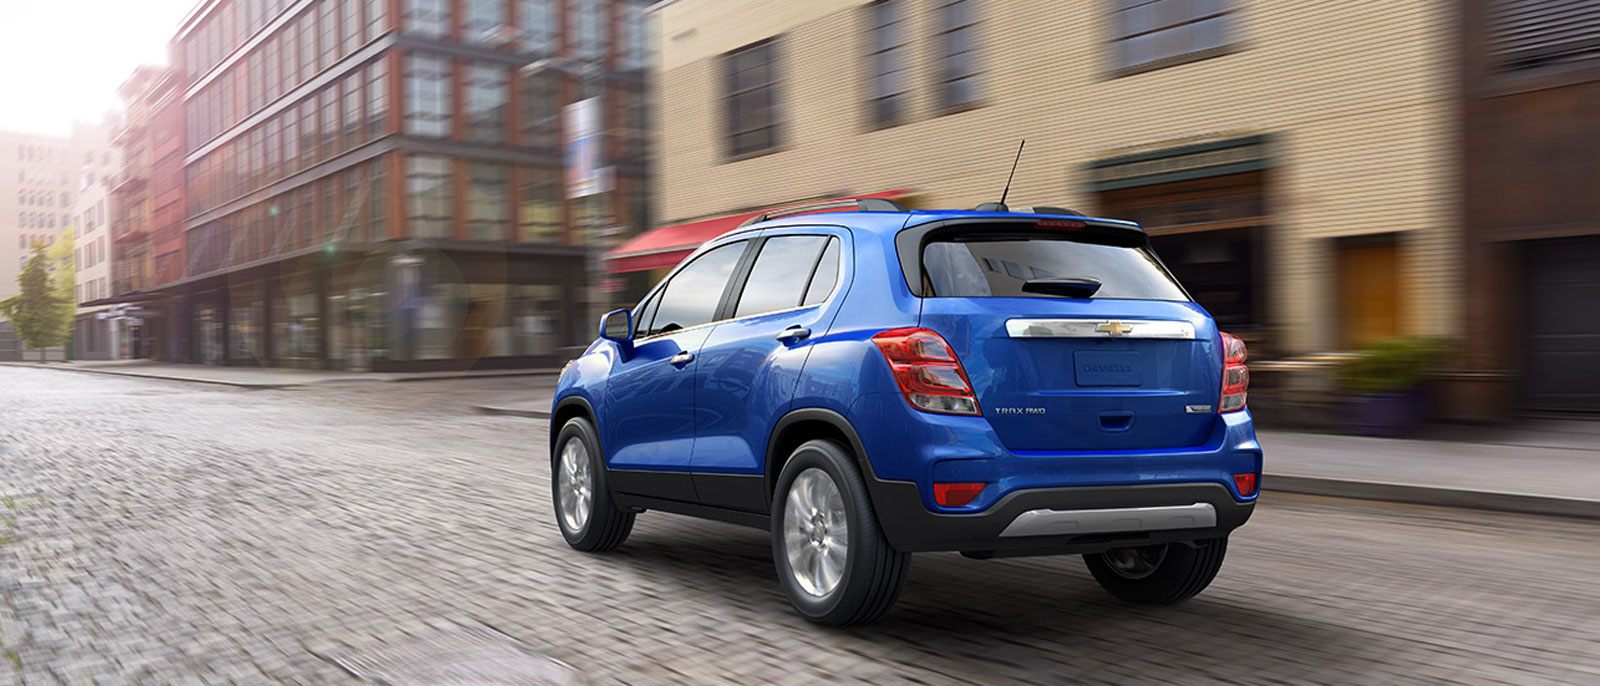 A blue 2017 Chevy Trax, which wins when comparing the 2017 Chevy Trax vs 2017 Kia Soul, is driving down a city street near Cincinnati, OH.